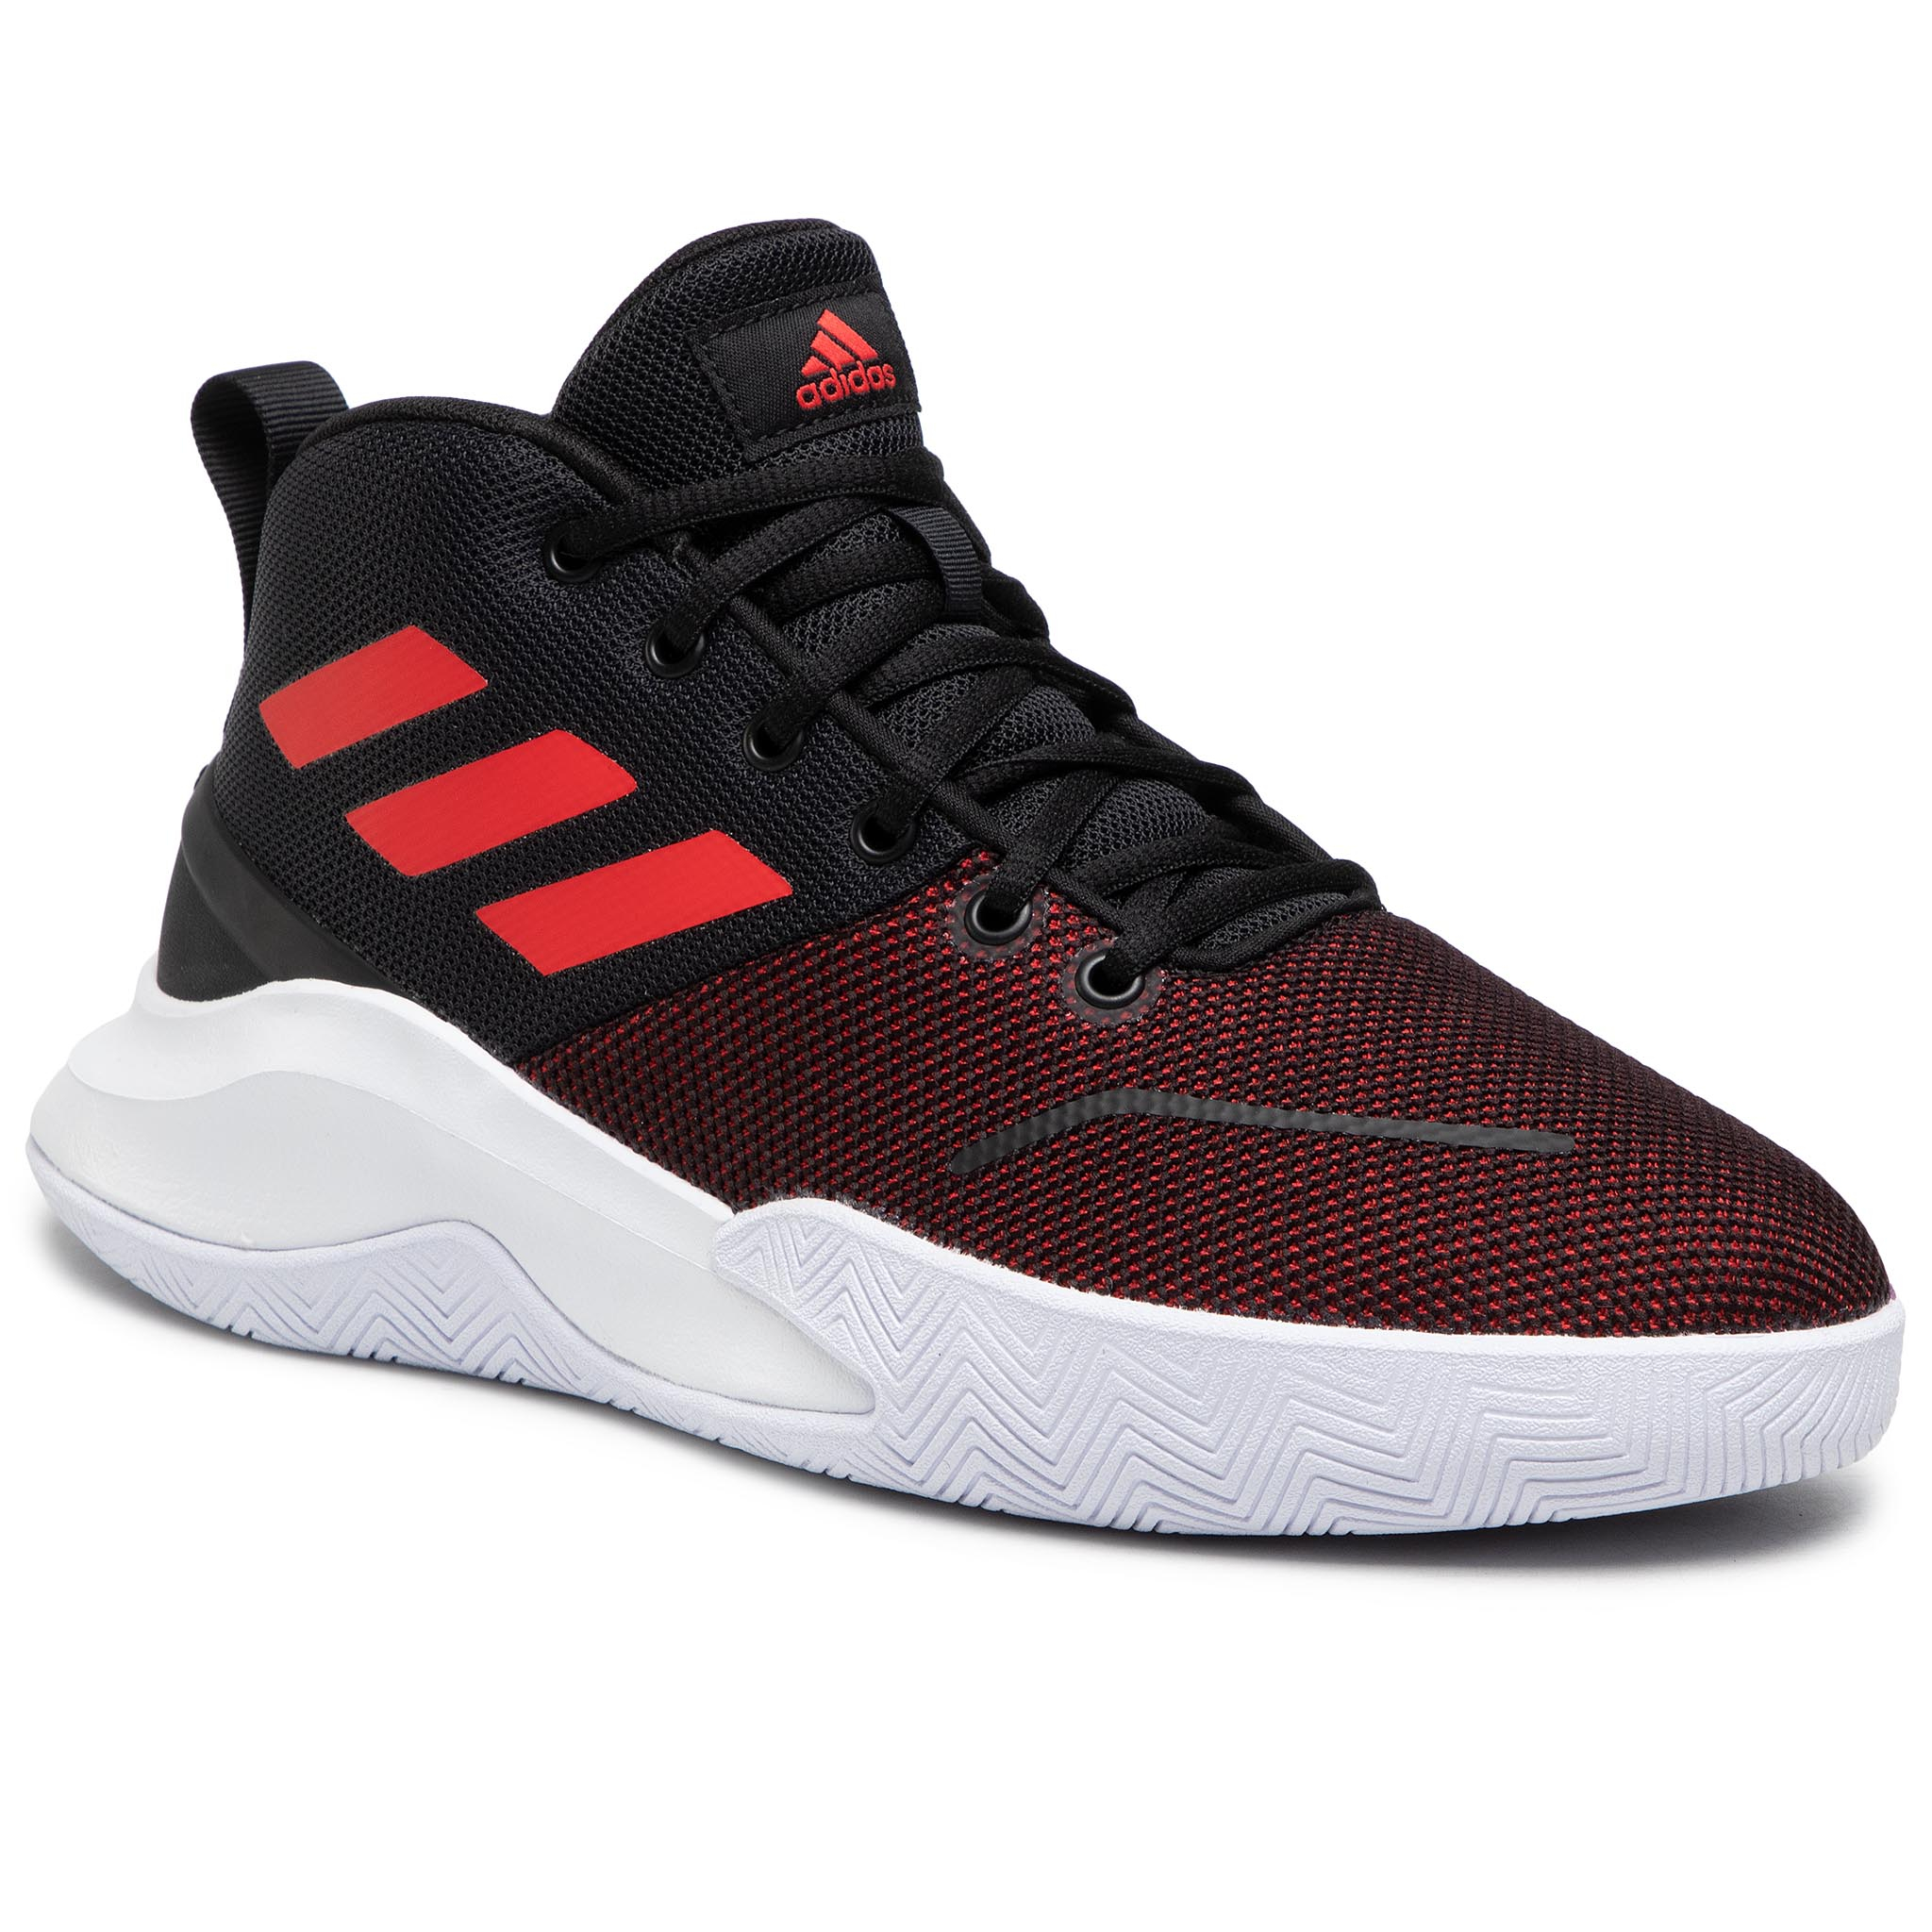 Image of Schuhe adidas - Ownthegame FY6008 Black